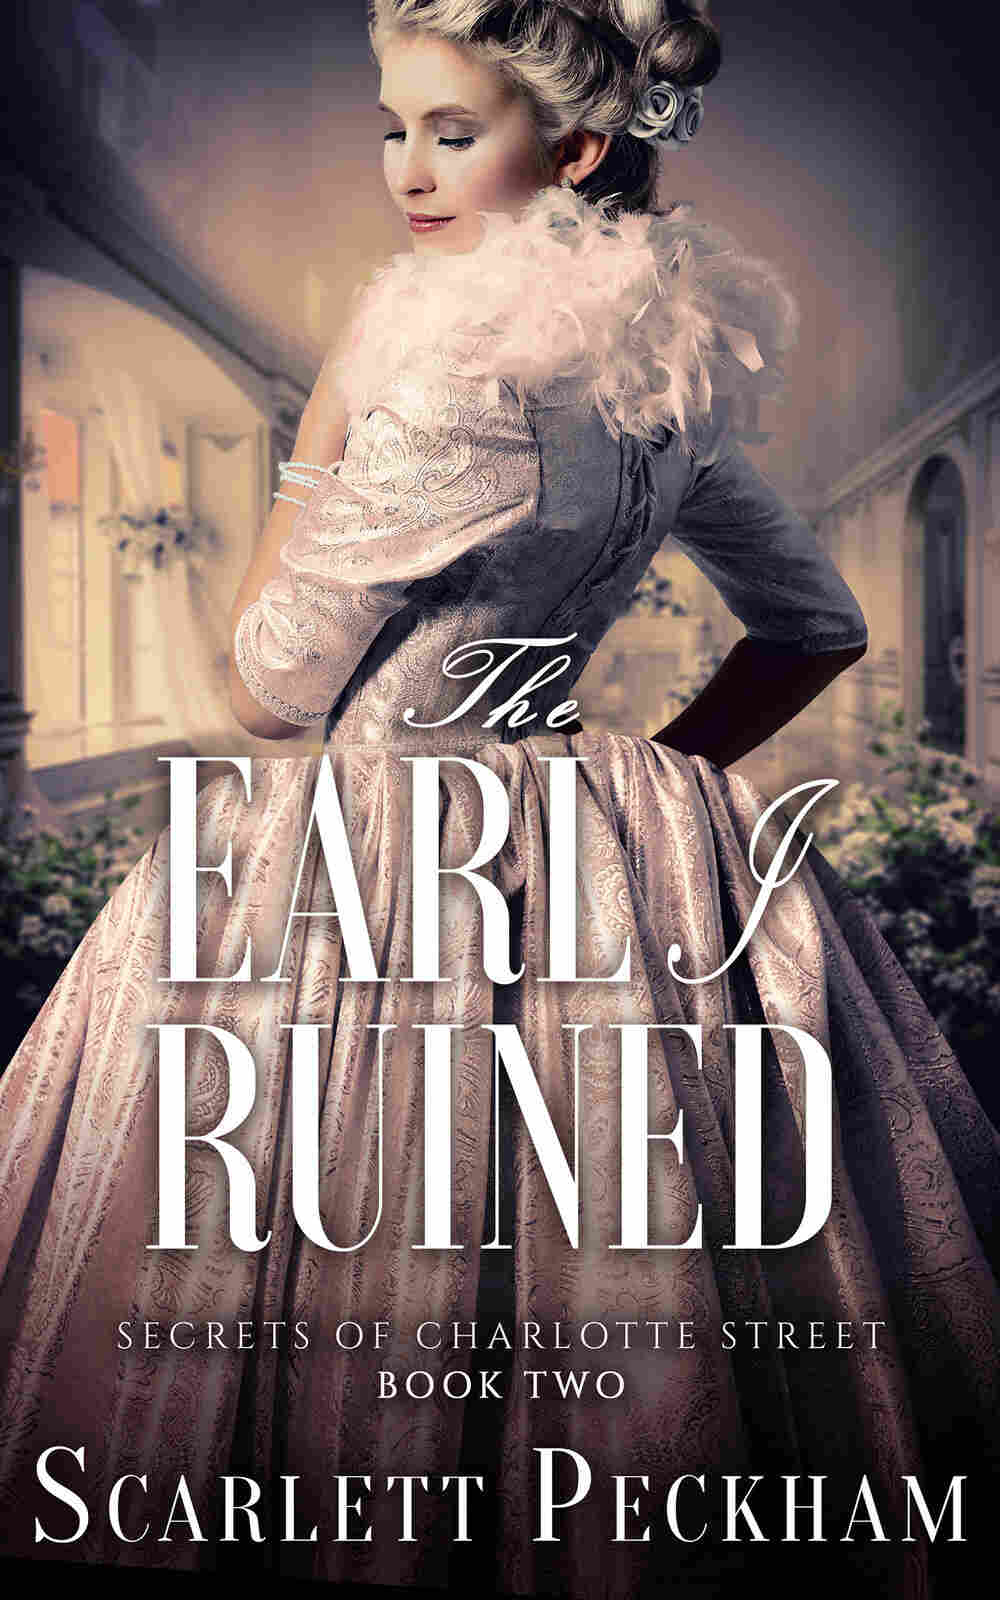 The Earl I Ruined, by Scarlett Peckham